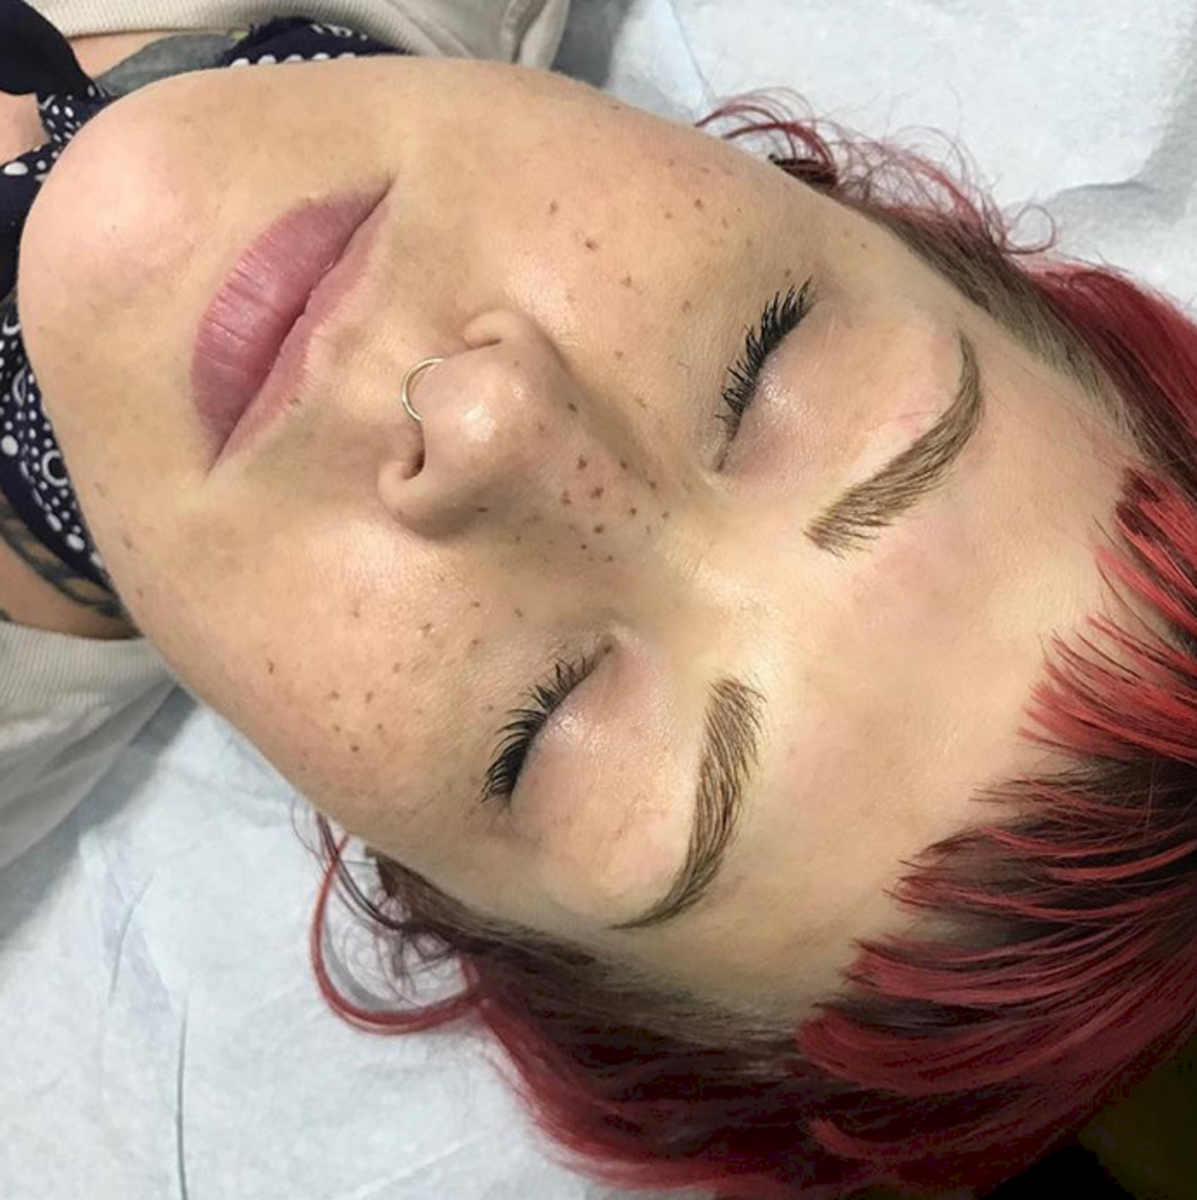 Cosmetic surgery, cosmetic tattoos, microblade tattoos, microblading, freckle tattoos, eyebrow tattoos